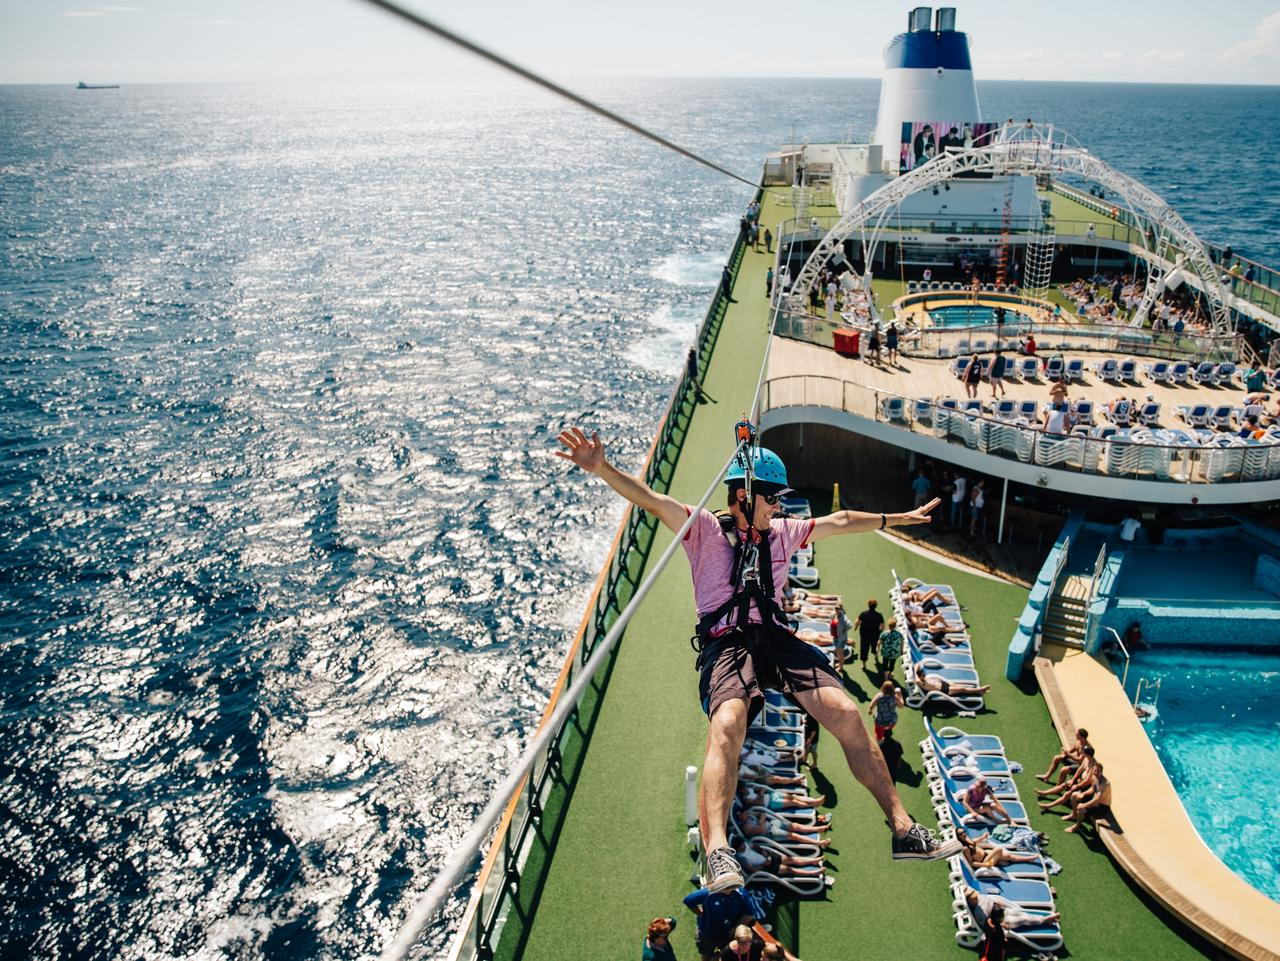 ESCAPE: Cruise cover story, Christine Retschlag, Oct 1 -  Pacific Pearl, P&O Cruise. Picture: Supplied